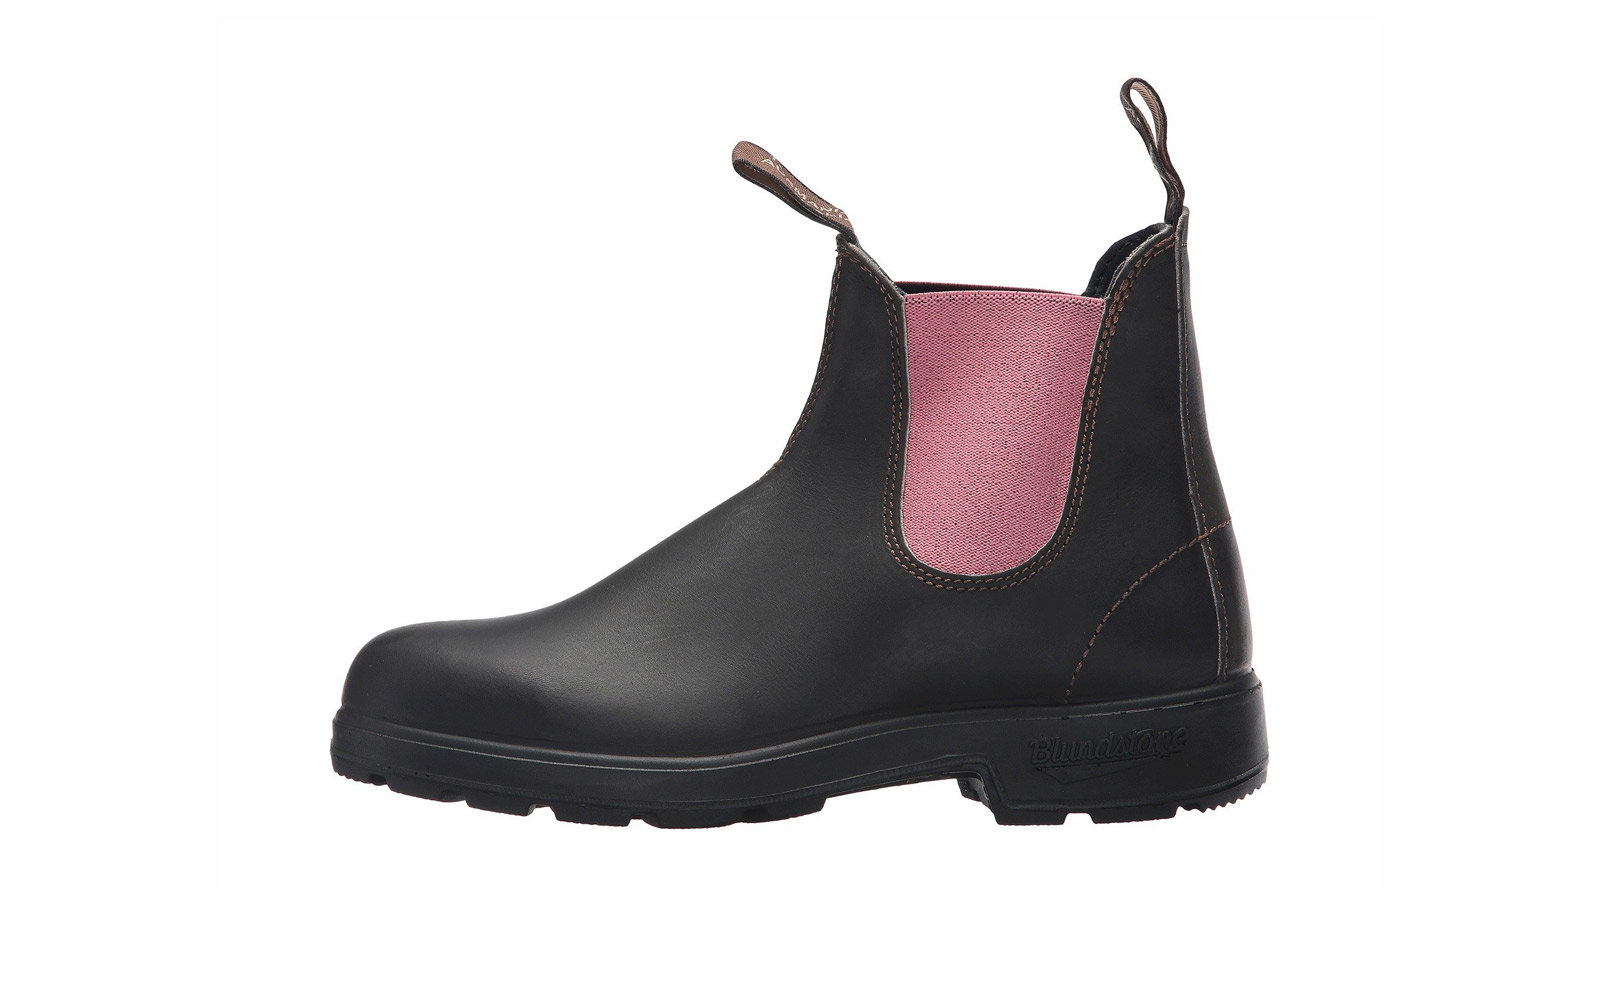 Blundstone Red Trimmed Boots